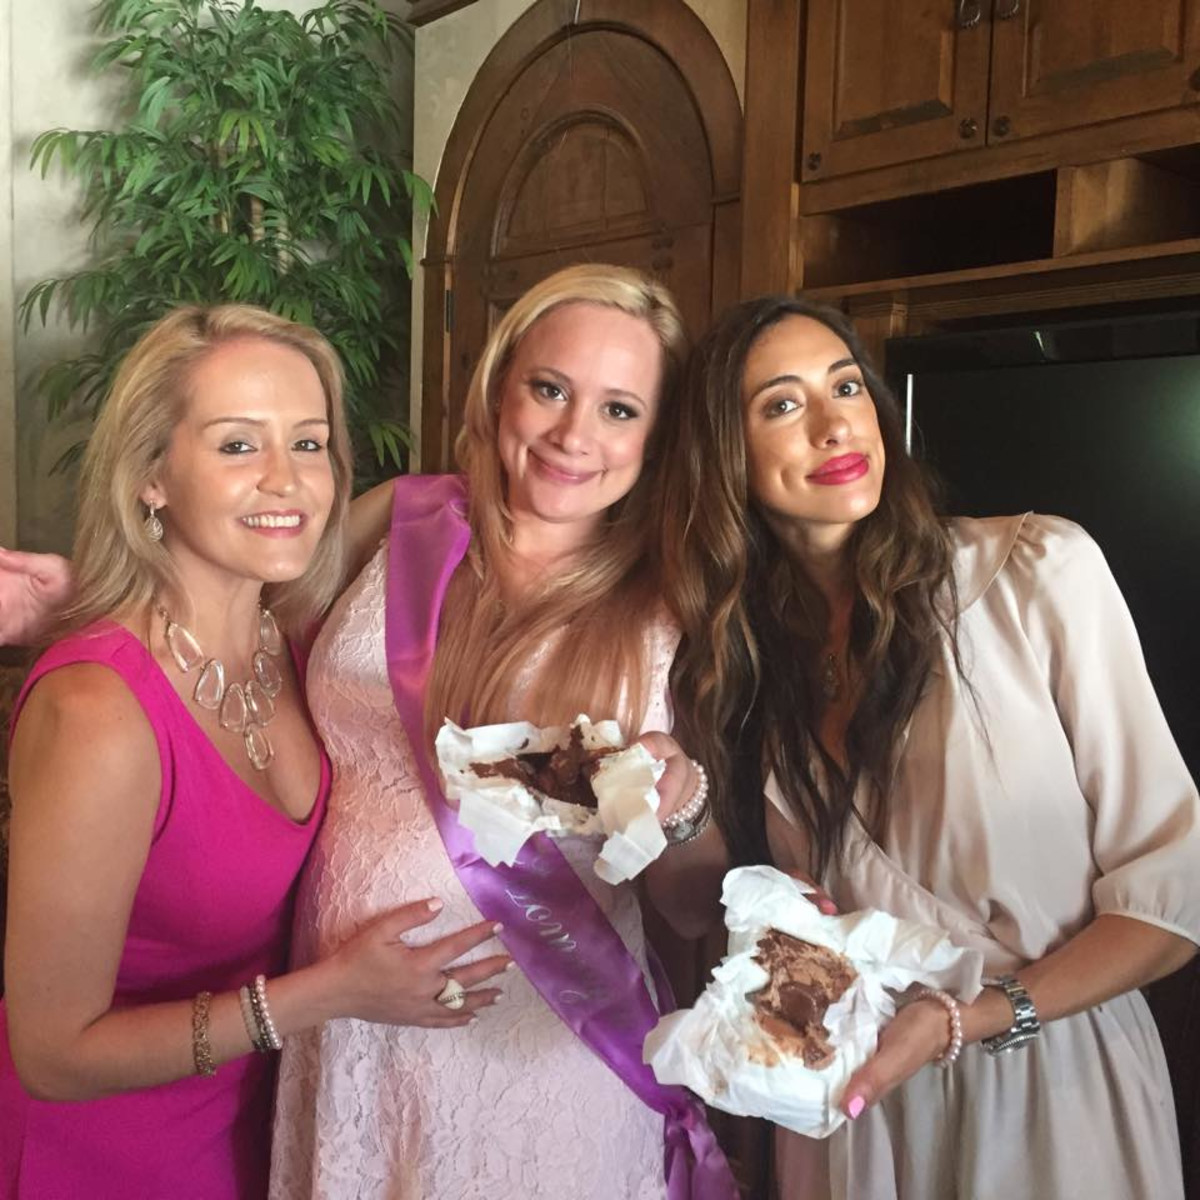 Erica Rose Baby Shower, June 2016, Nicole Fertitta Stresau, Erica Rose, Britany Reichek